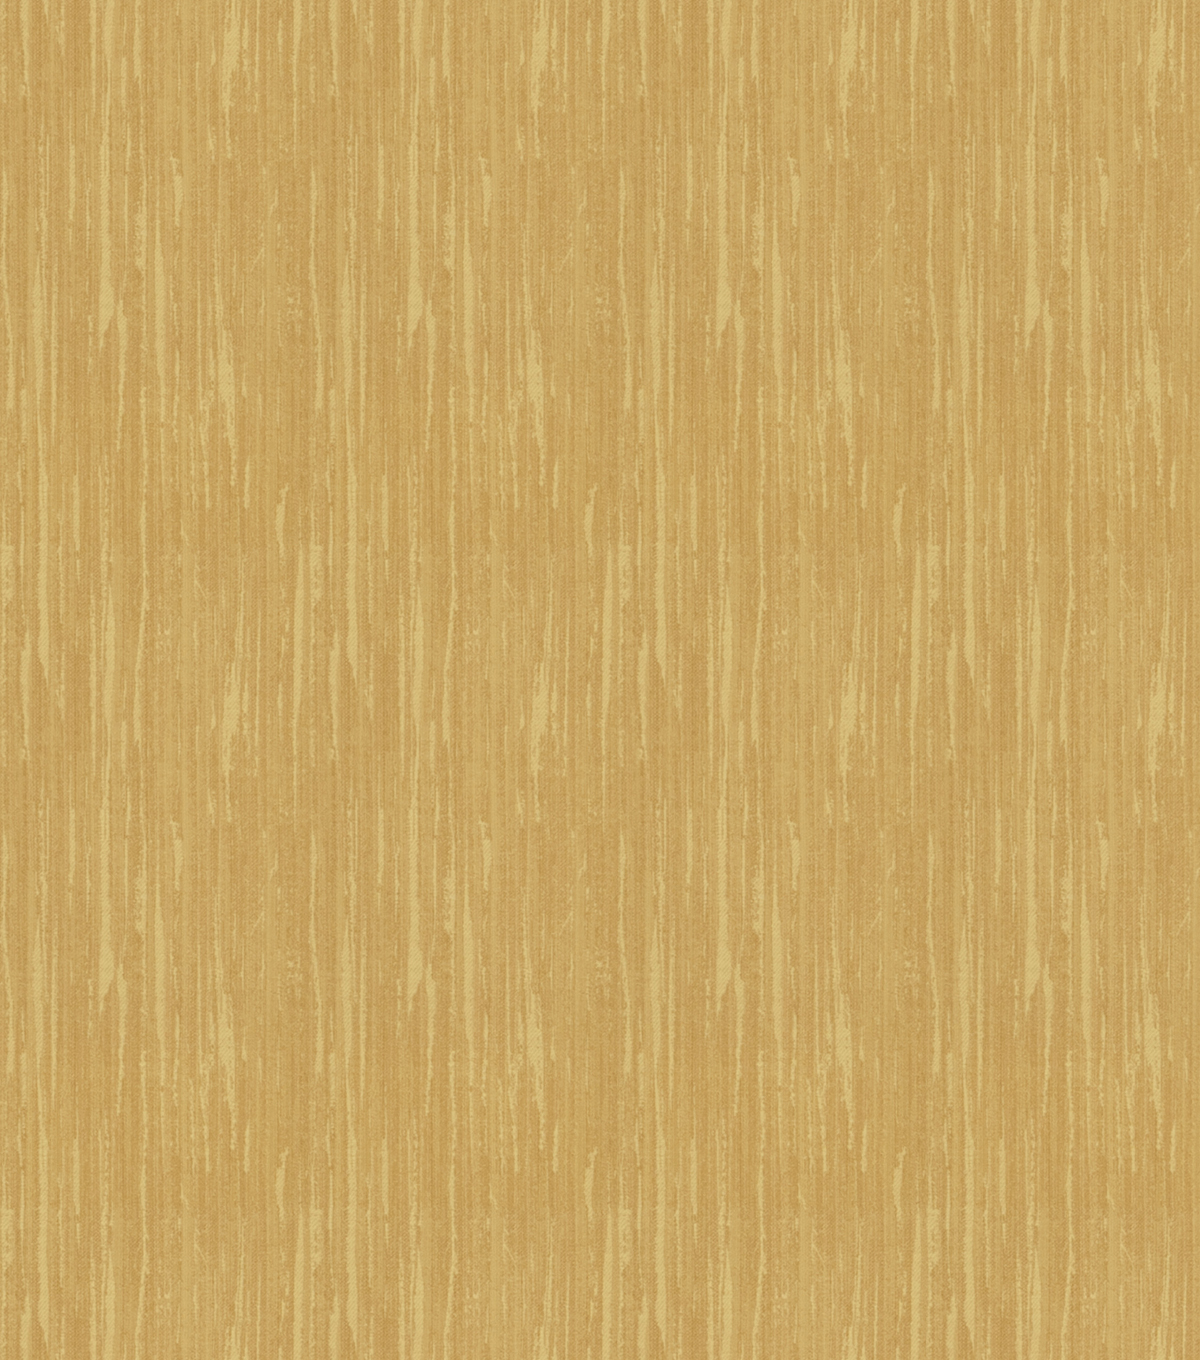 Home Decor 8x8 Fabric Swatch-Eaton Square Garcia Gold